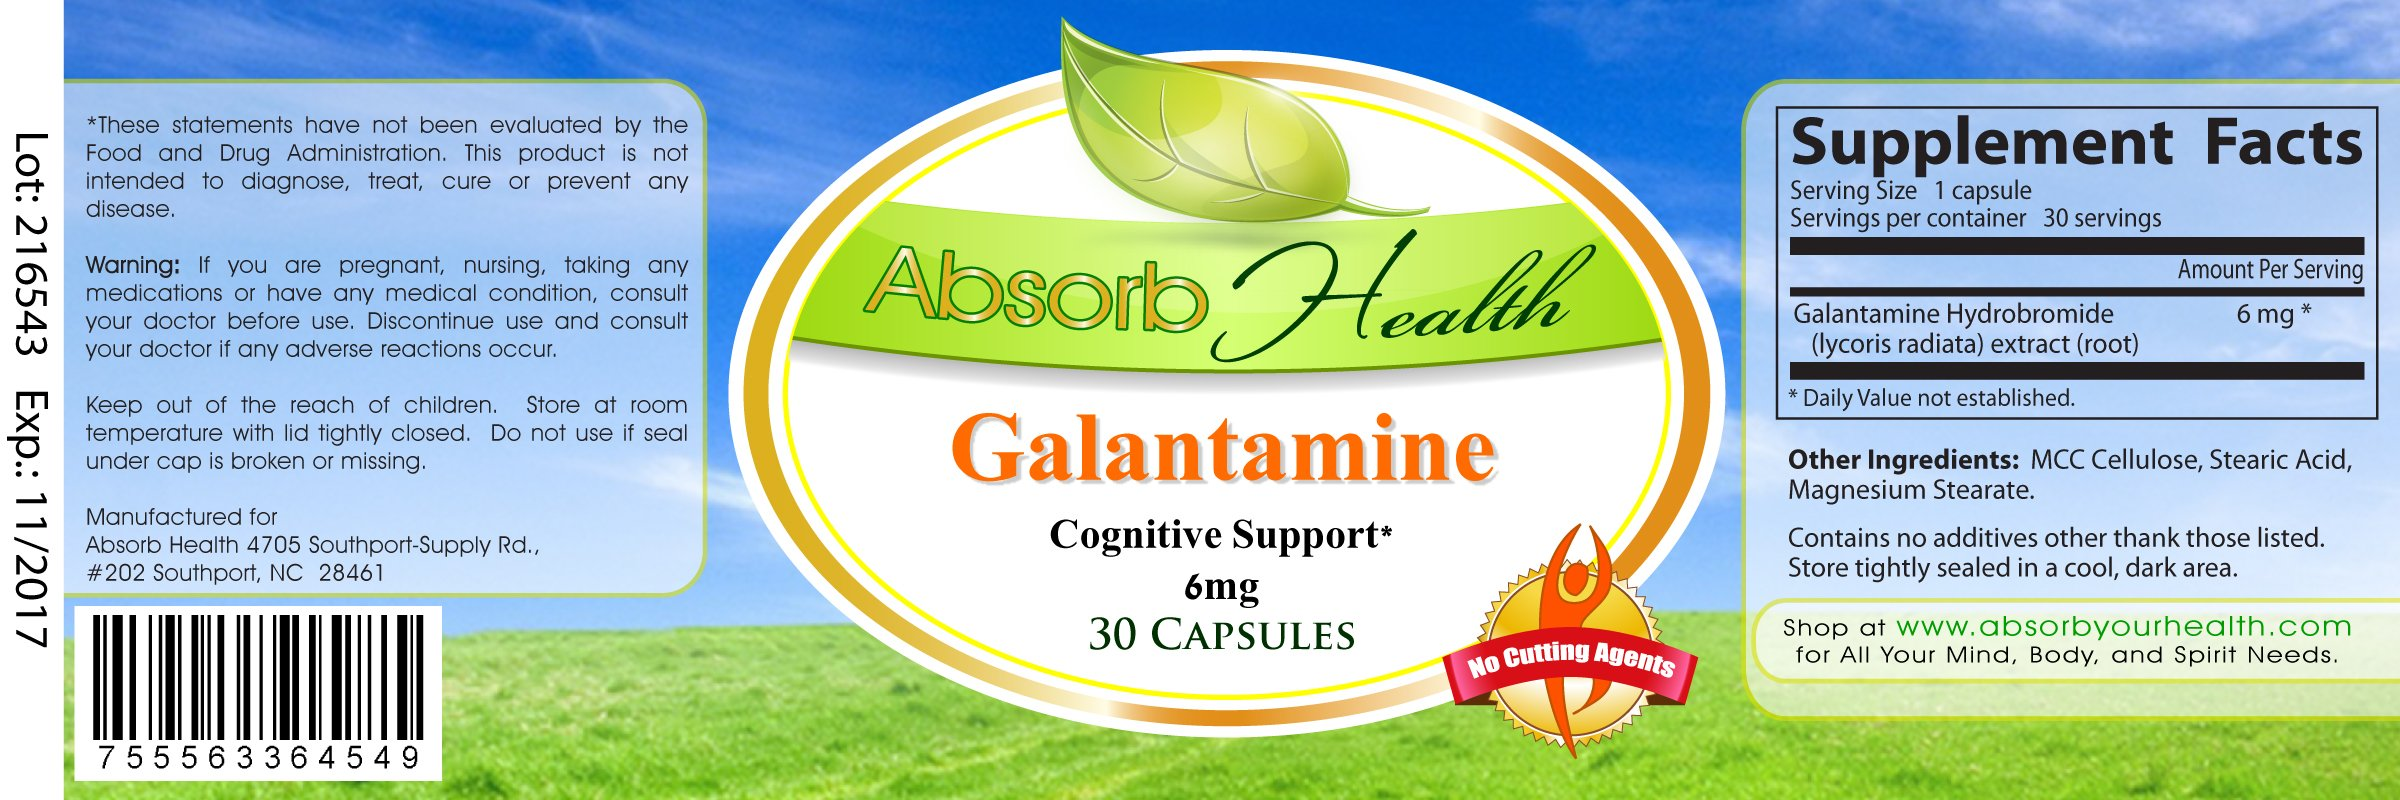 Galantamine | Lucid Dreaming And Cognitive Enhancement Supplement | 30 Capsules 6mg